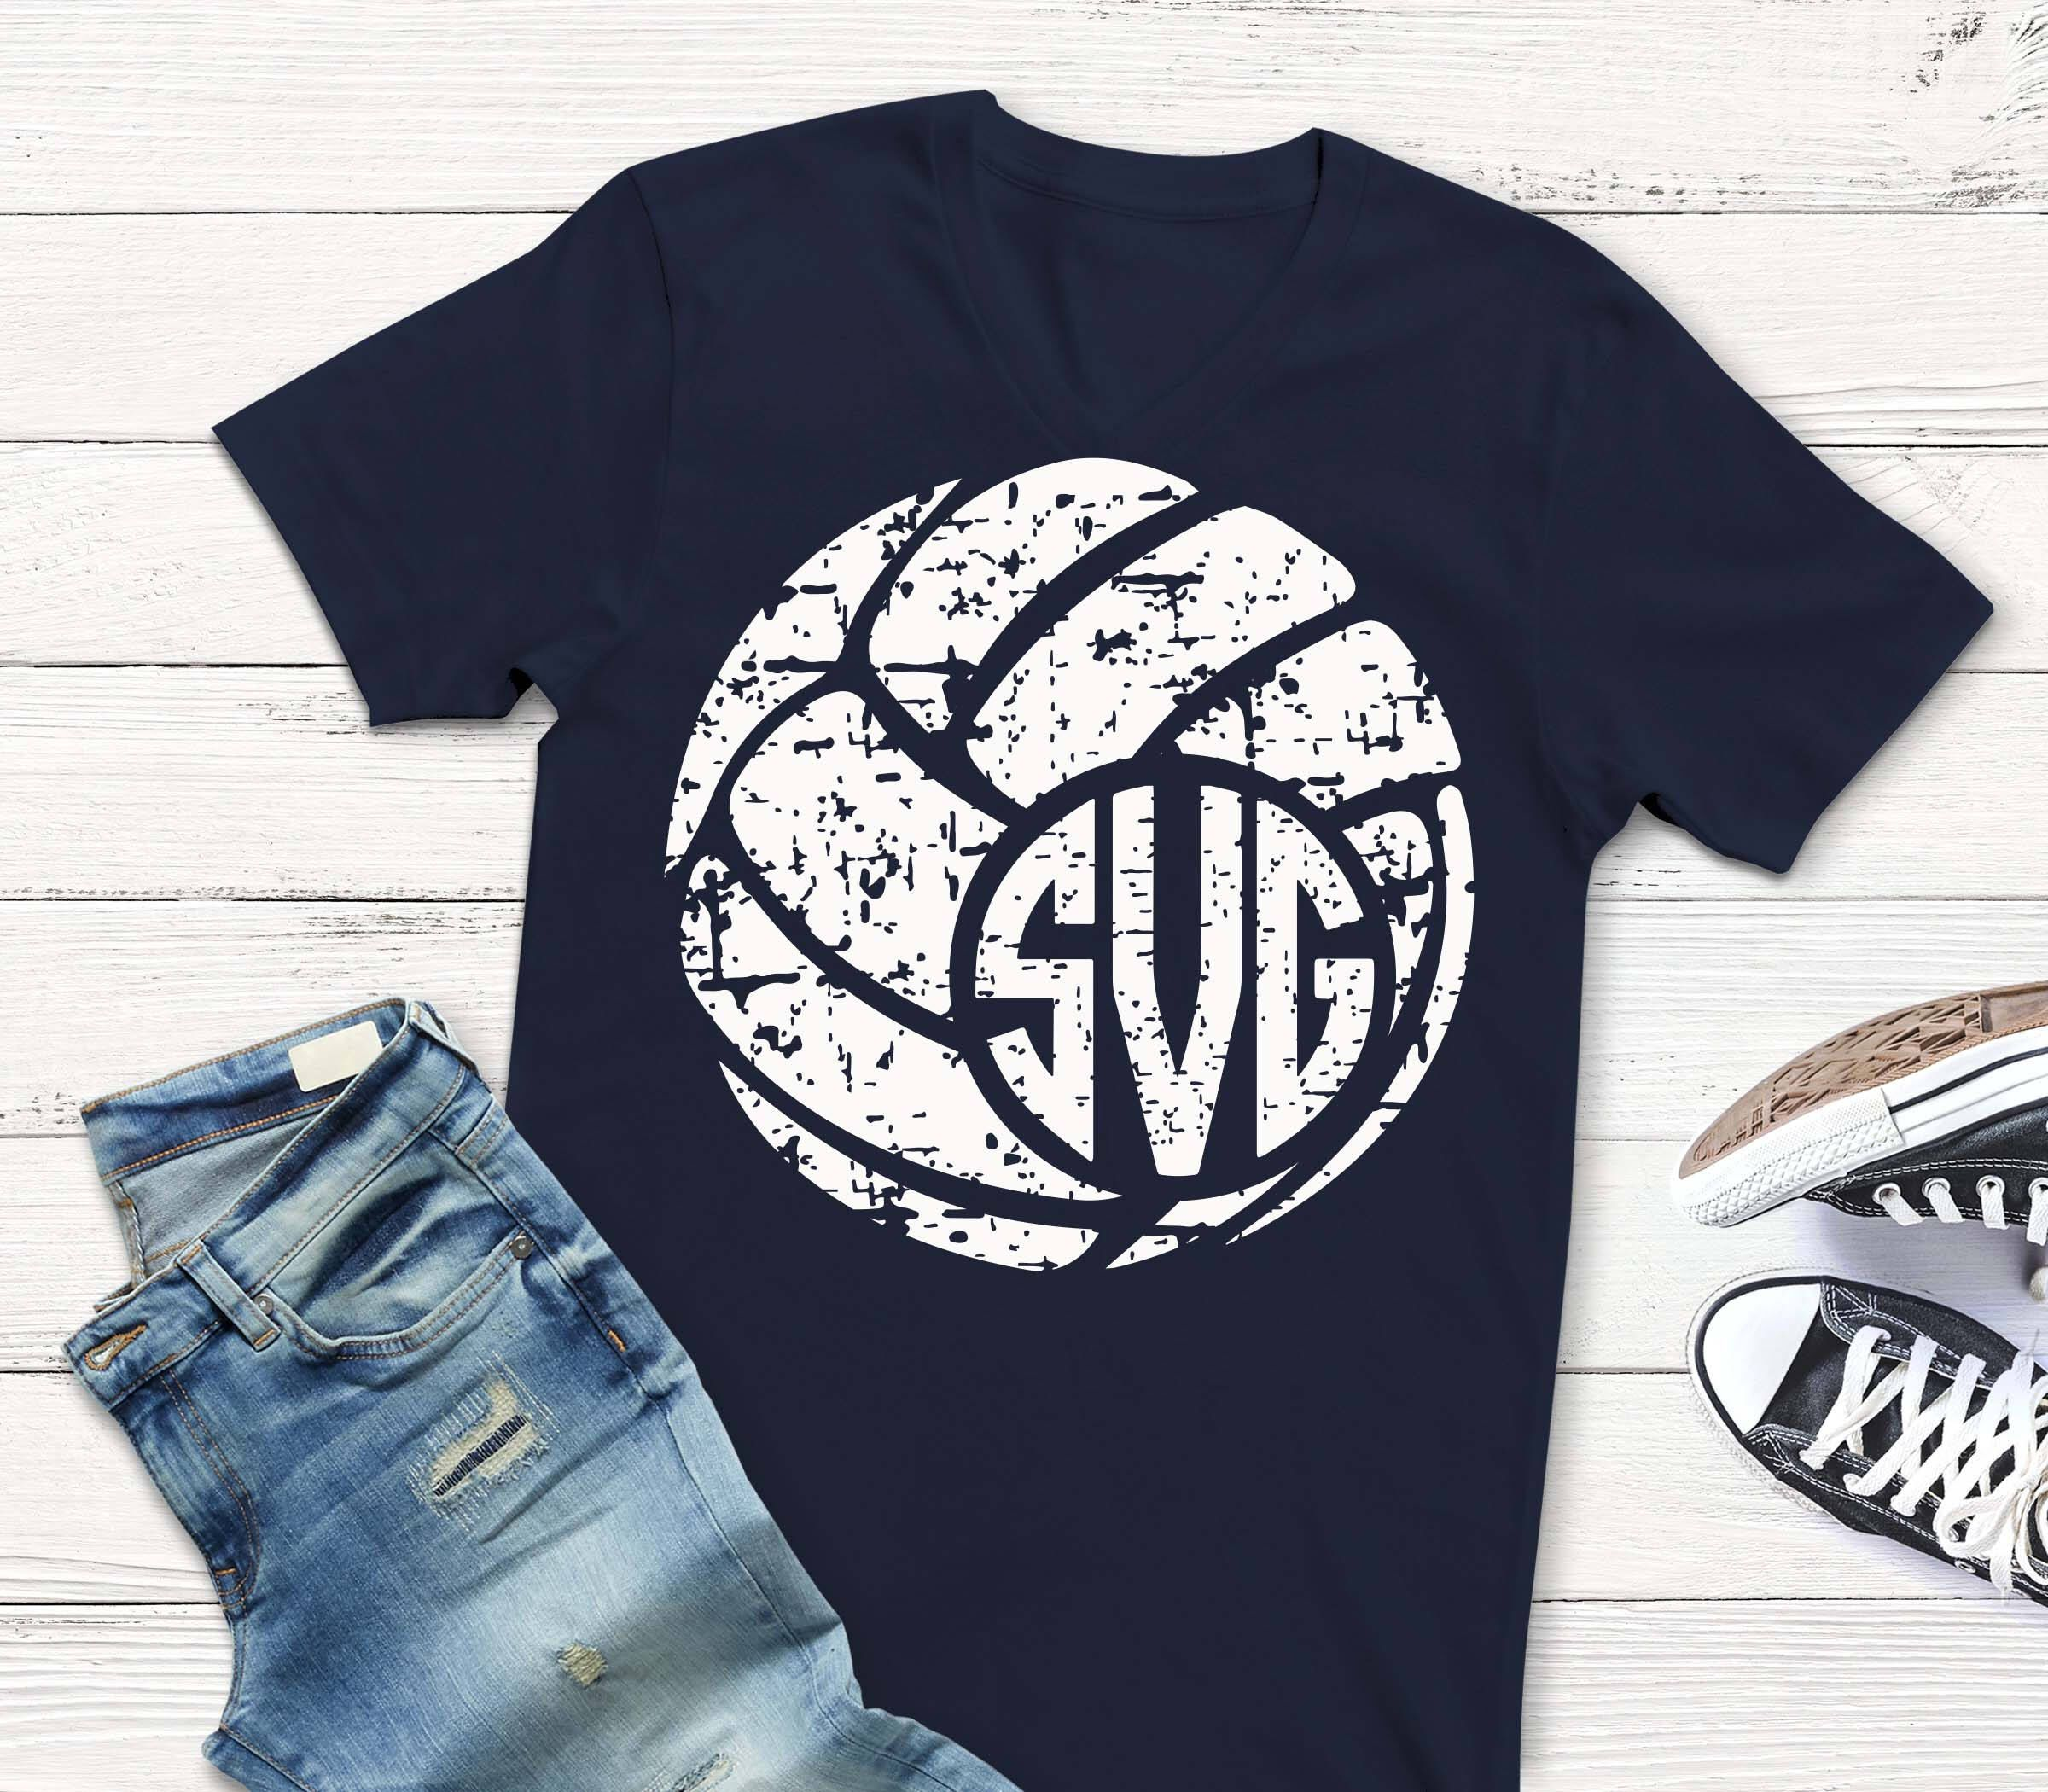 Volleyball Svg Distressed Svg Monogram Svg Volleyball Dxf Etsy Volleyball Shirt Designs Cute Volleyball Shirts Volleyball Shirts